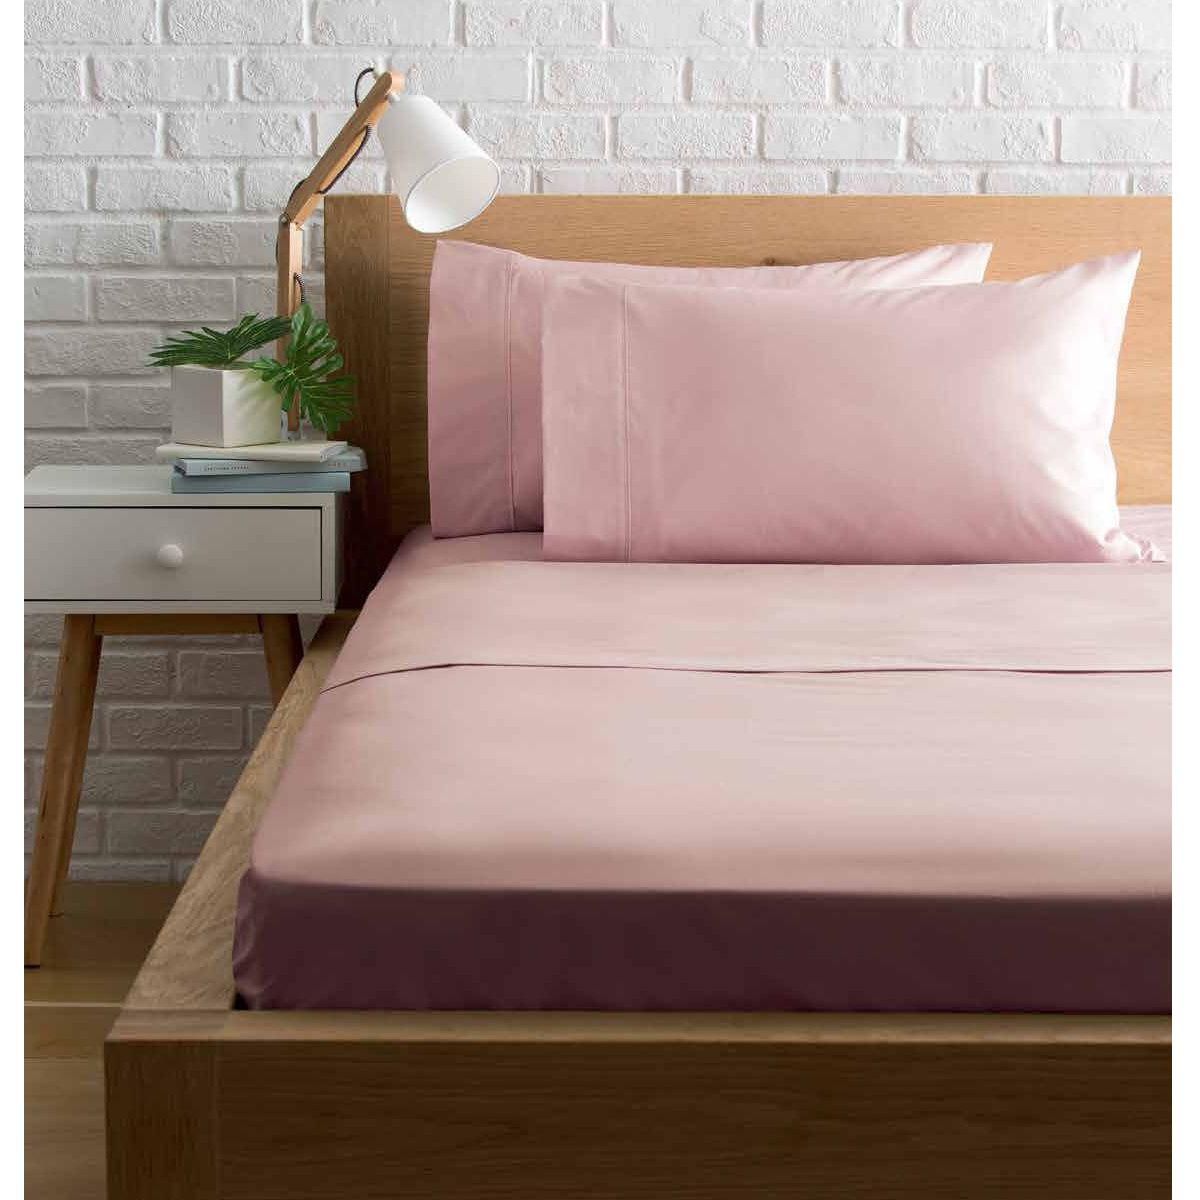 225 Thread Count Fitted Sheet Queen Bed, Pink Bed